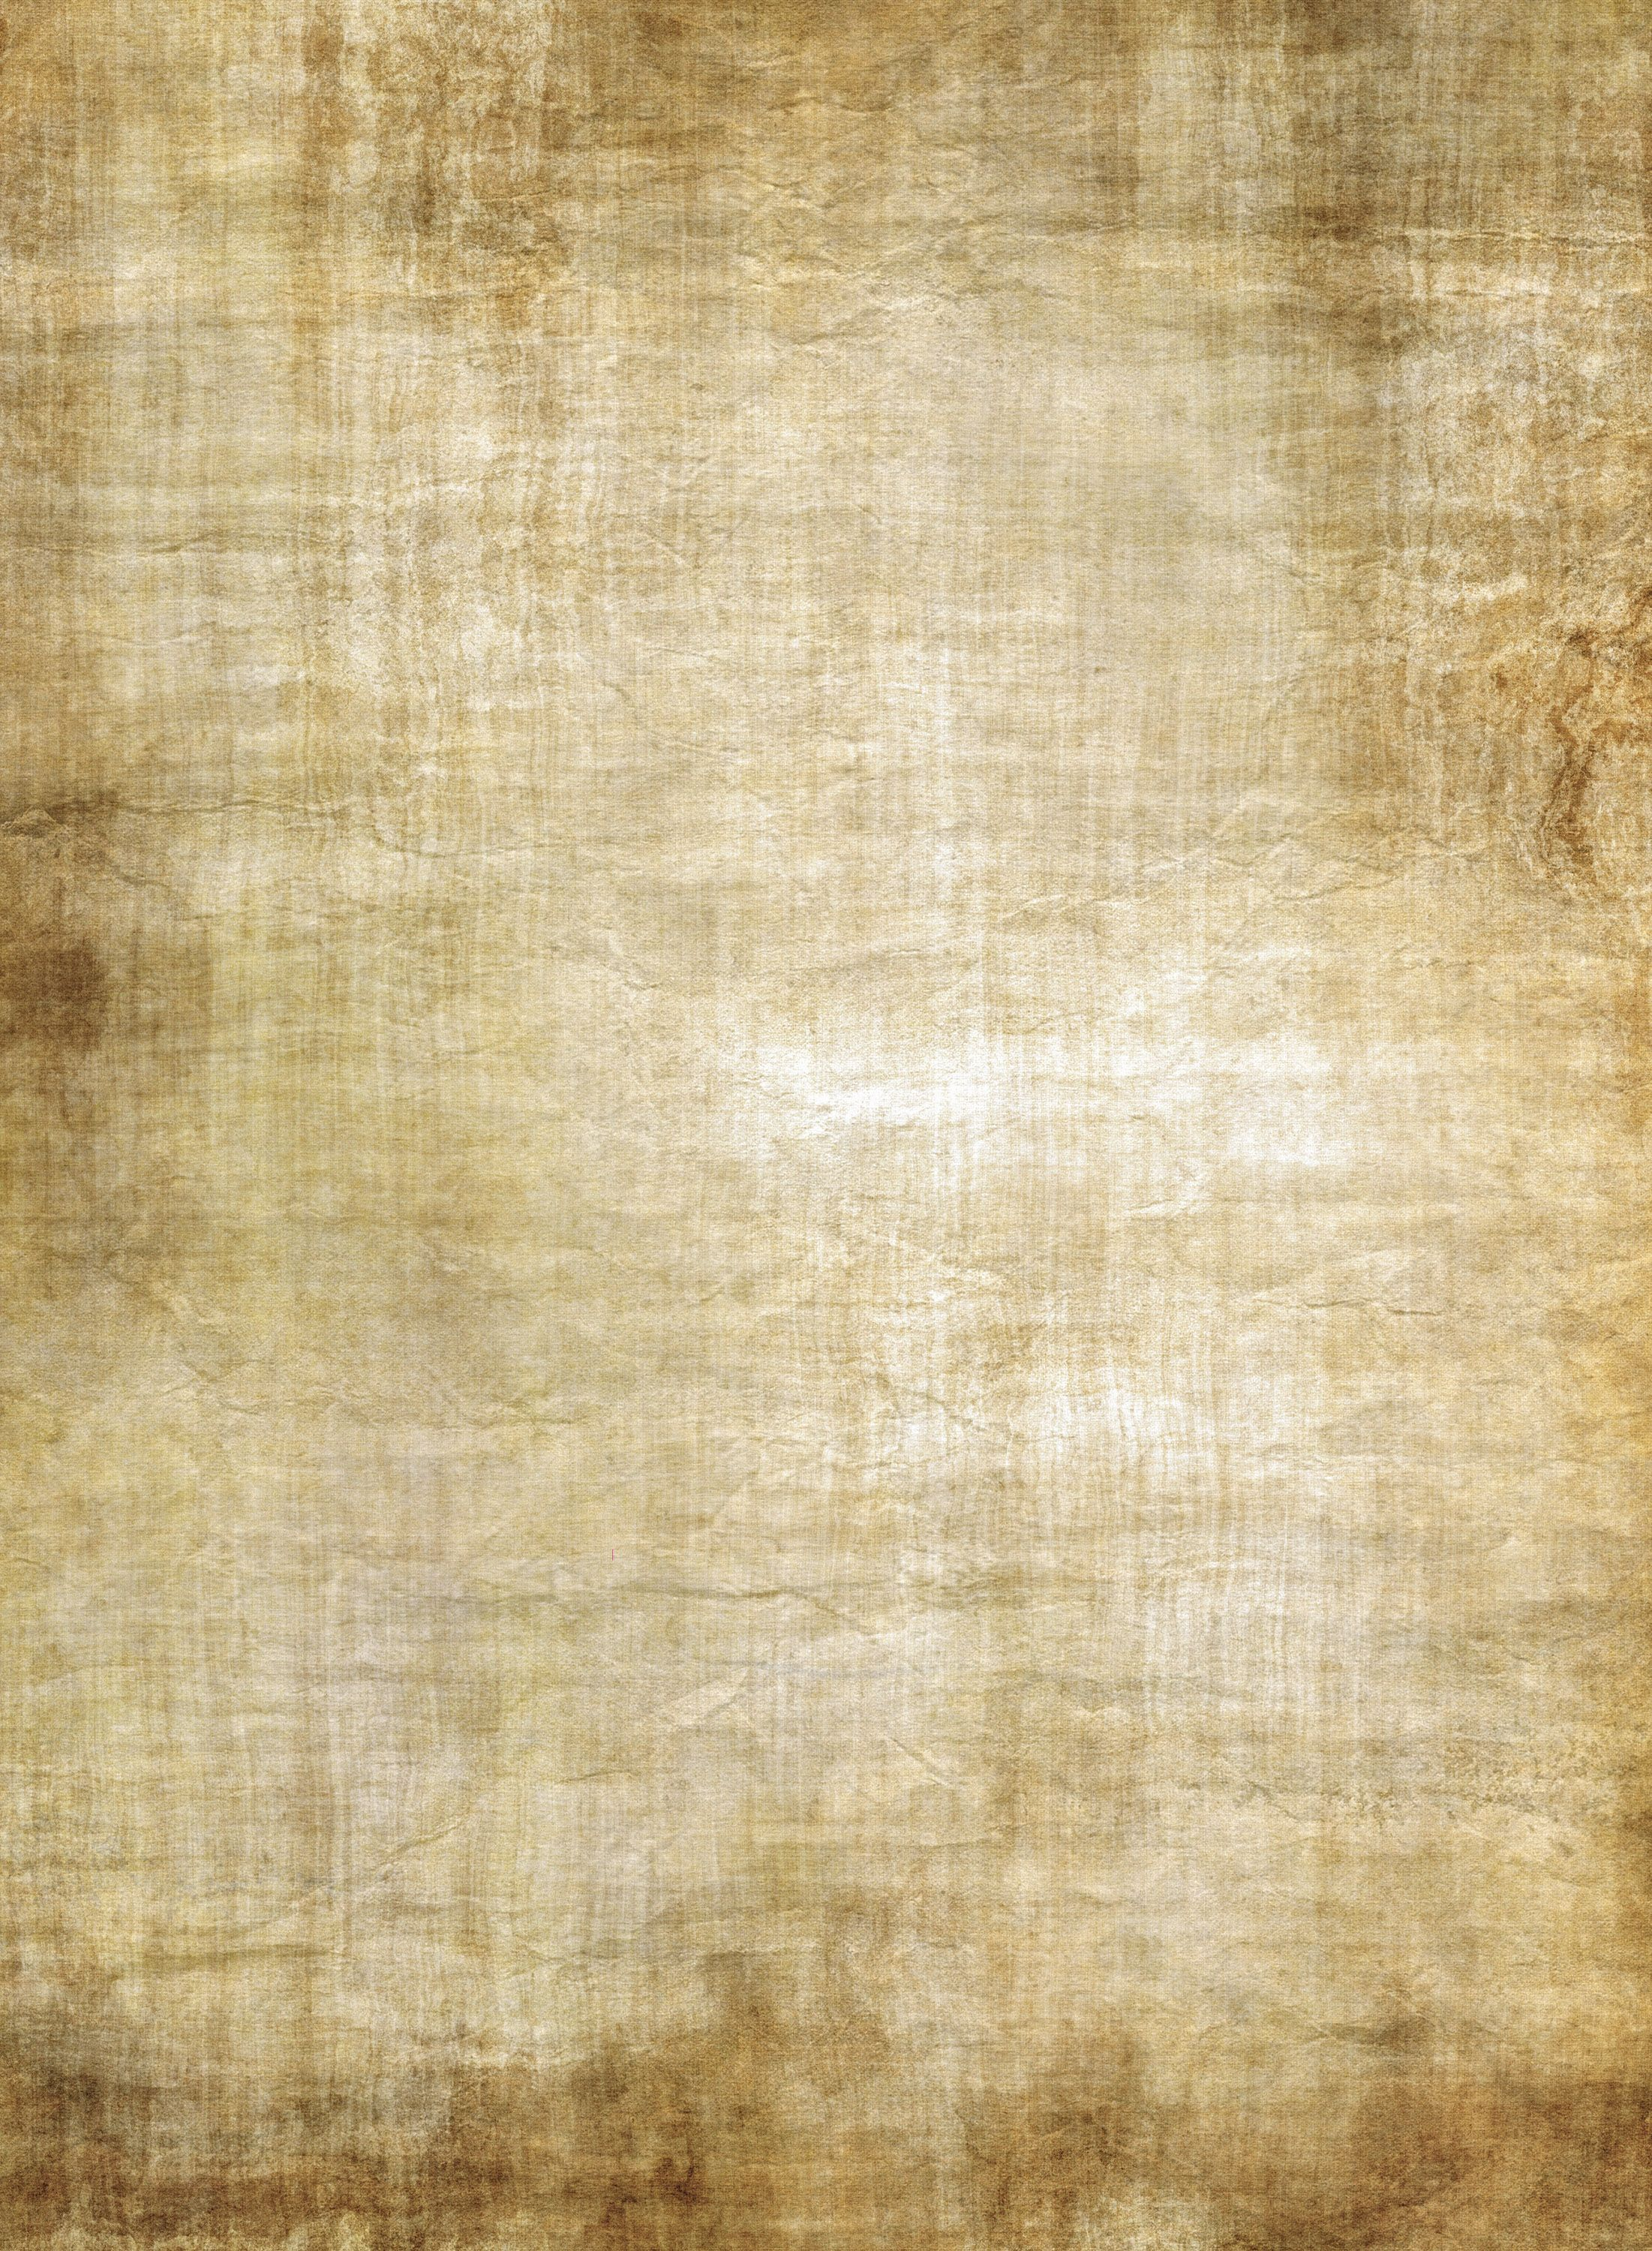 another free old brown vintage parchment paper texture for download